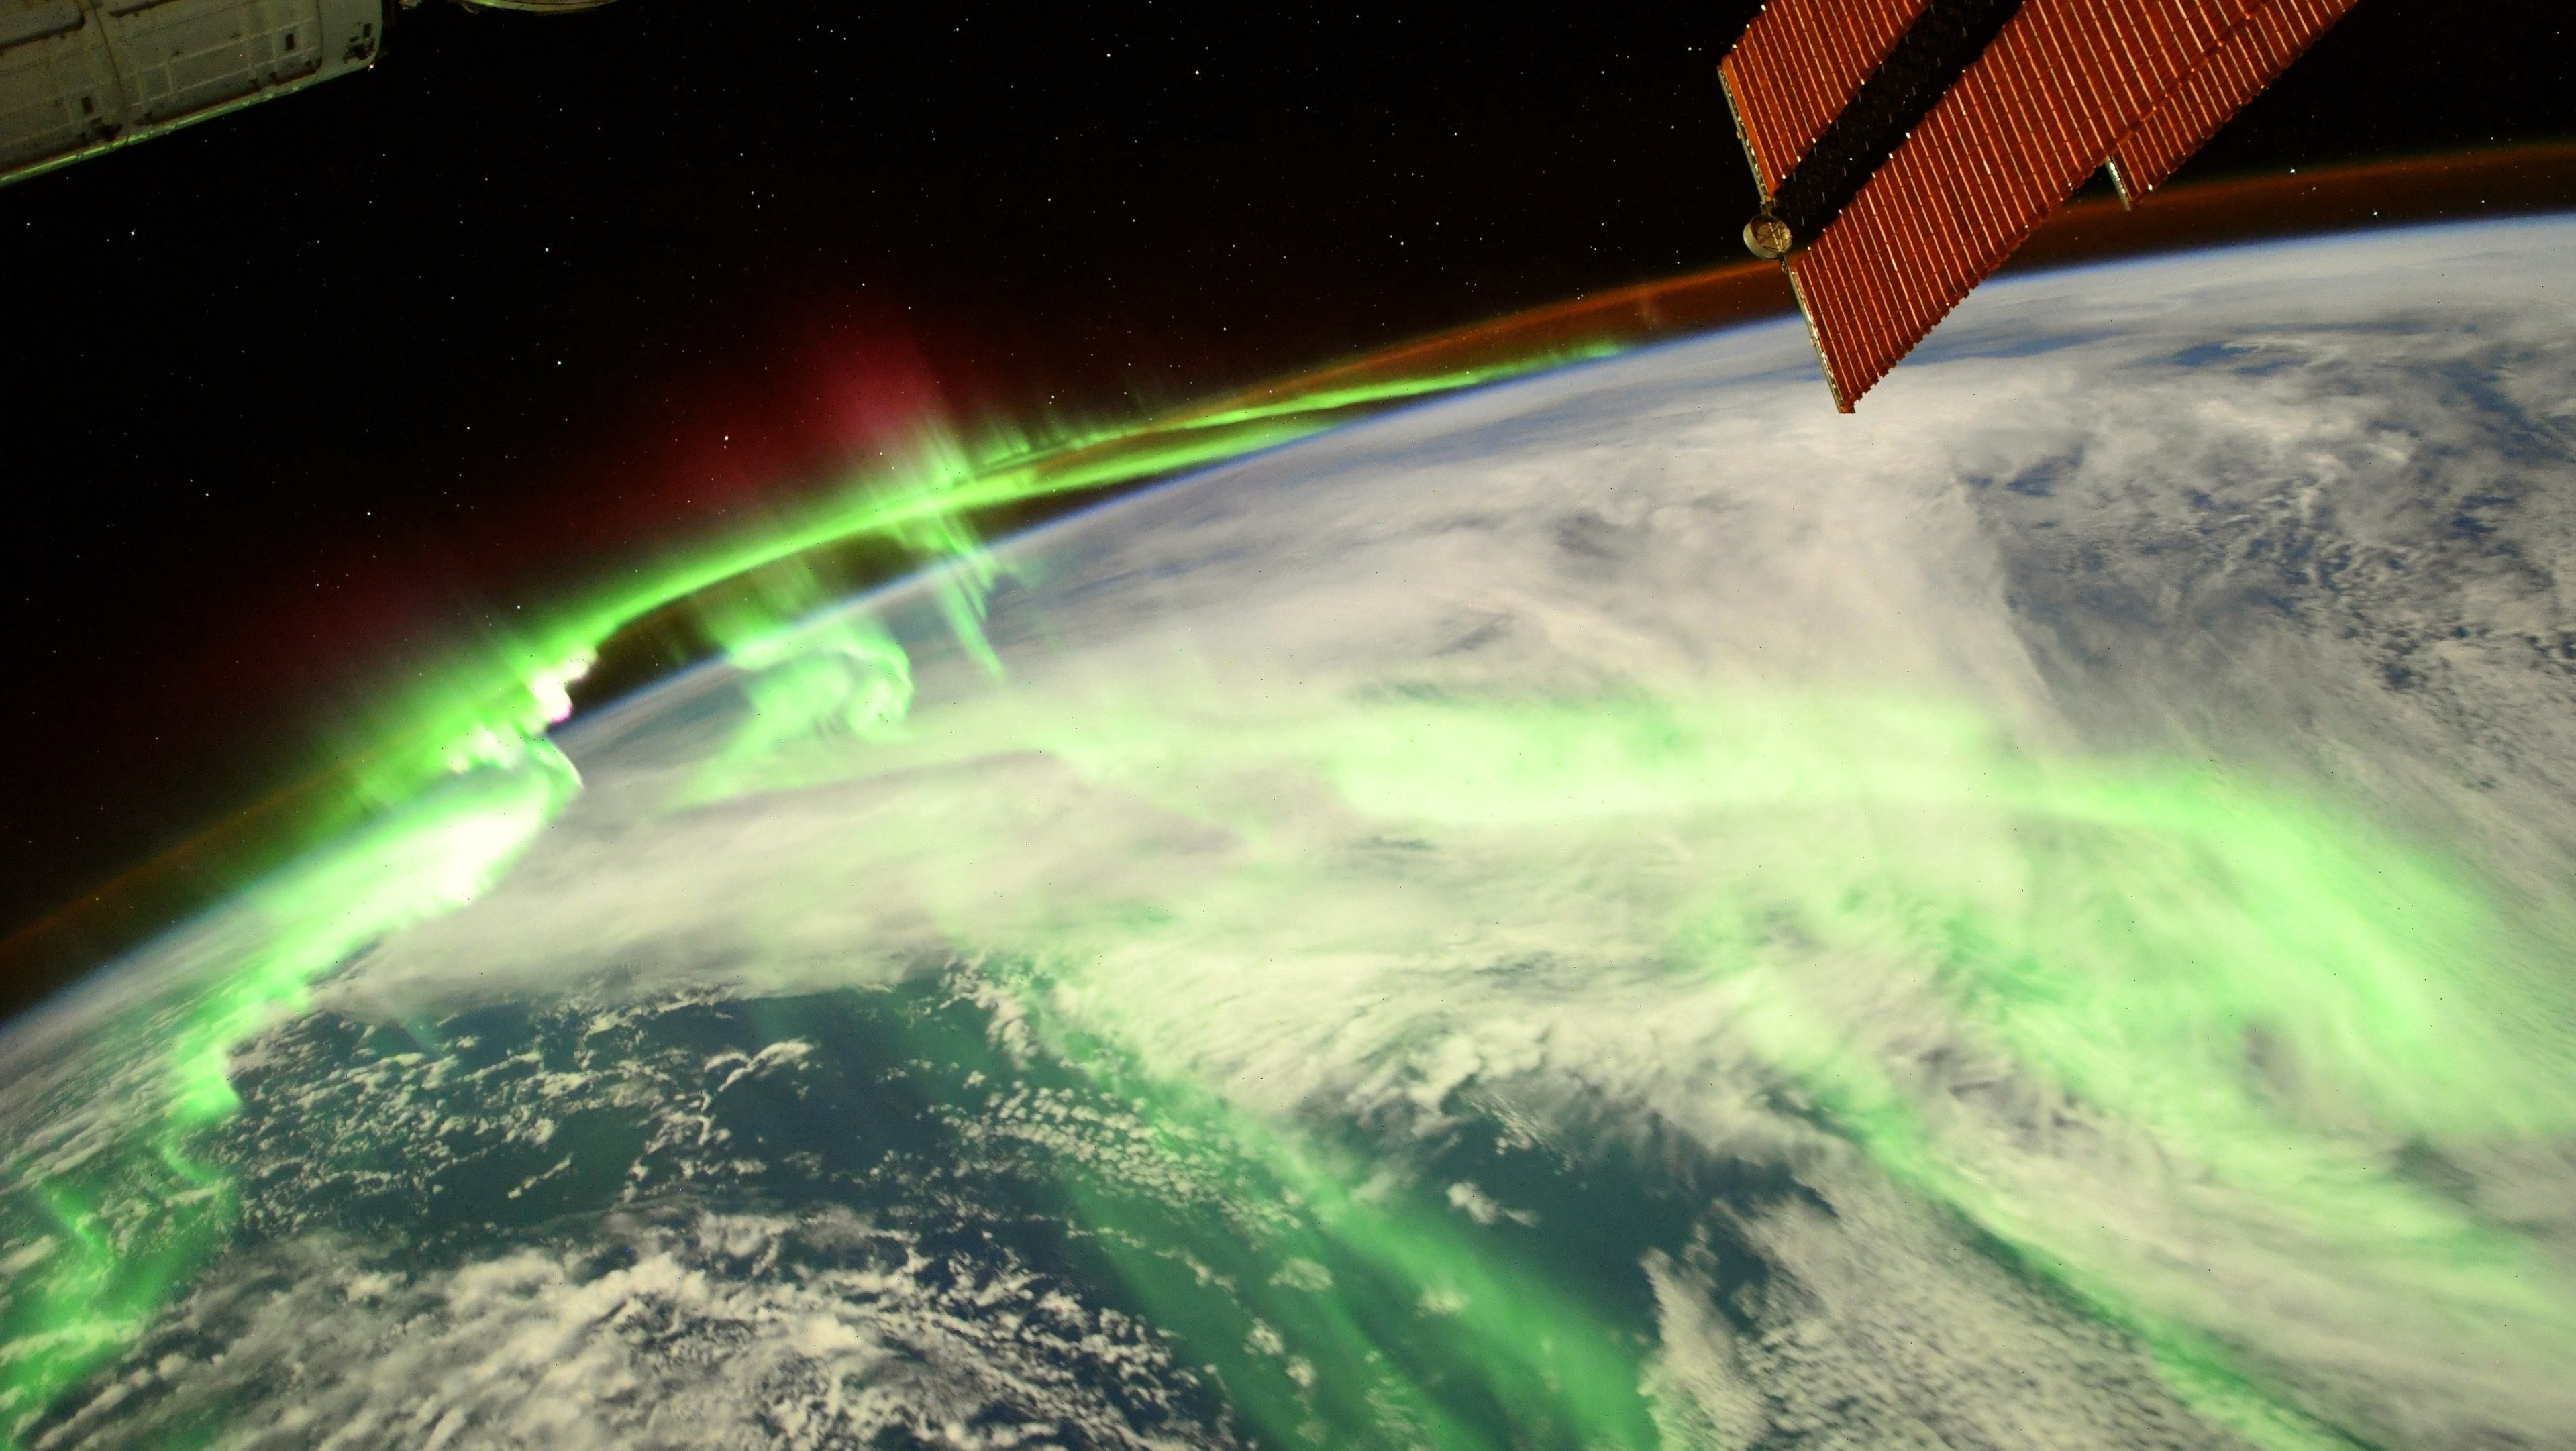 Earth  glows green in epic aurora image from the ISS